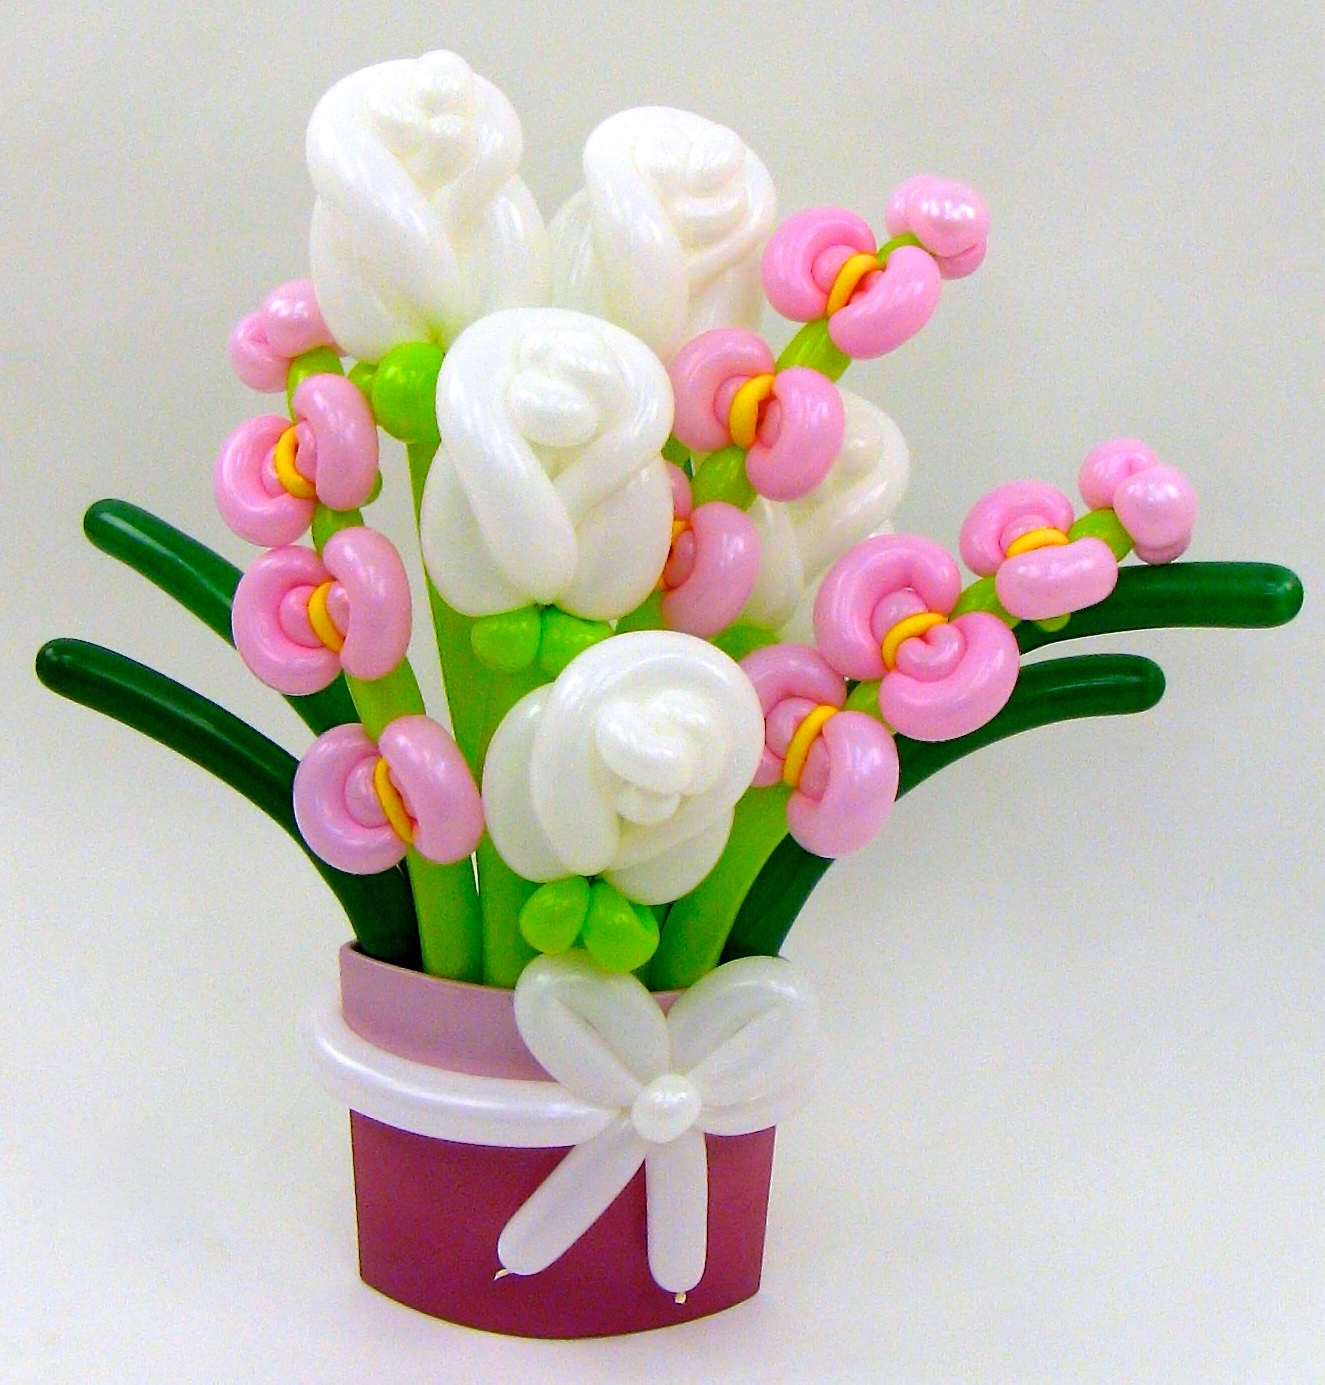 White Rose & Pink Orchid Flower Balloon Bouquet | BALLOON ANIMALS ...